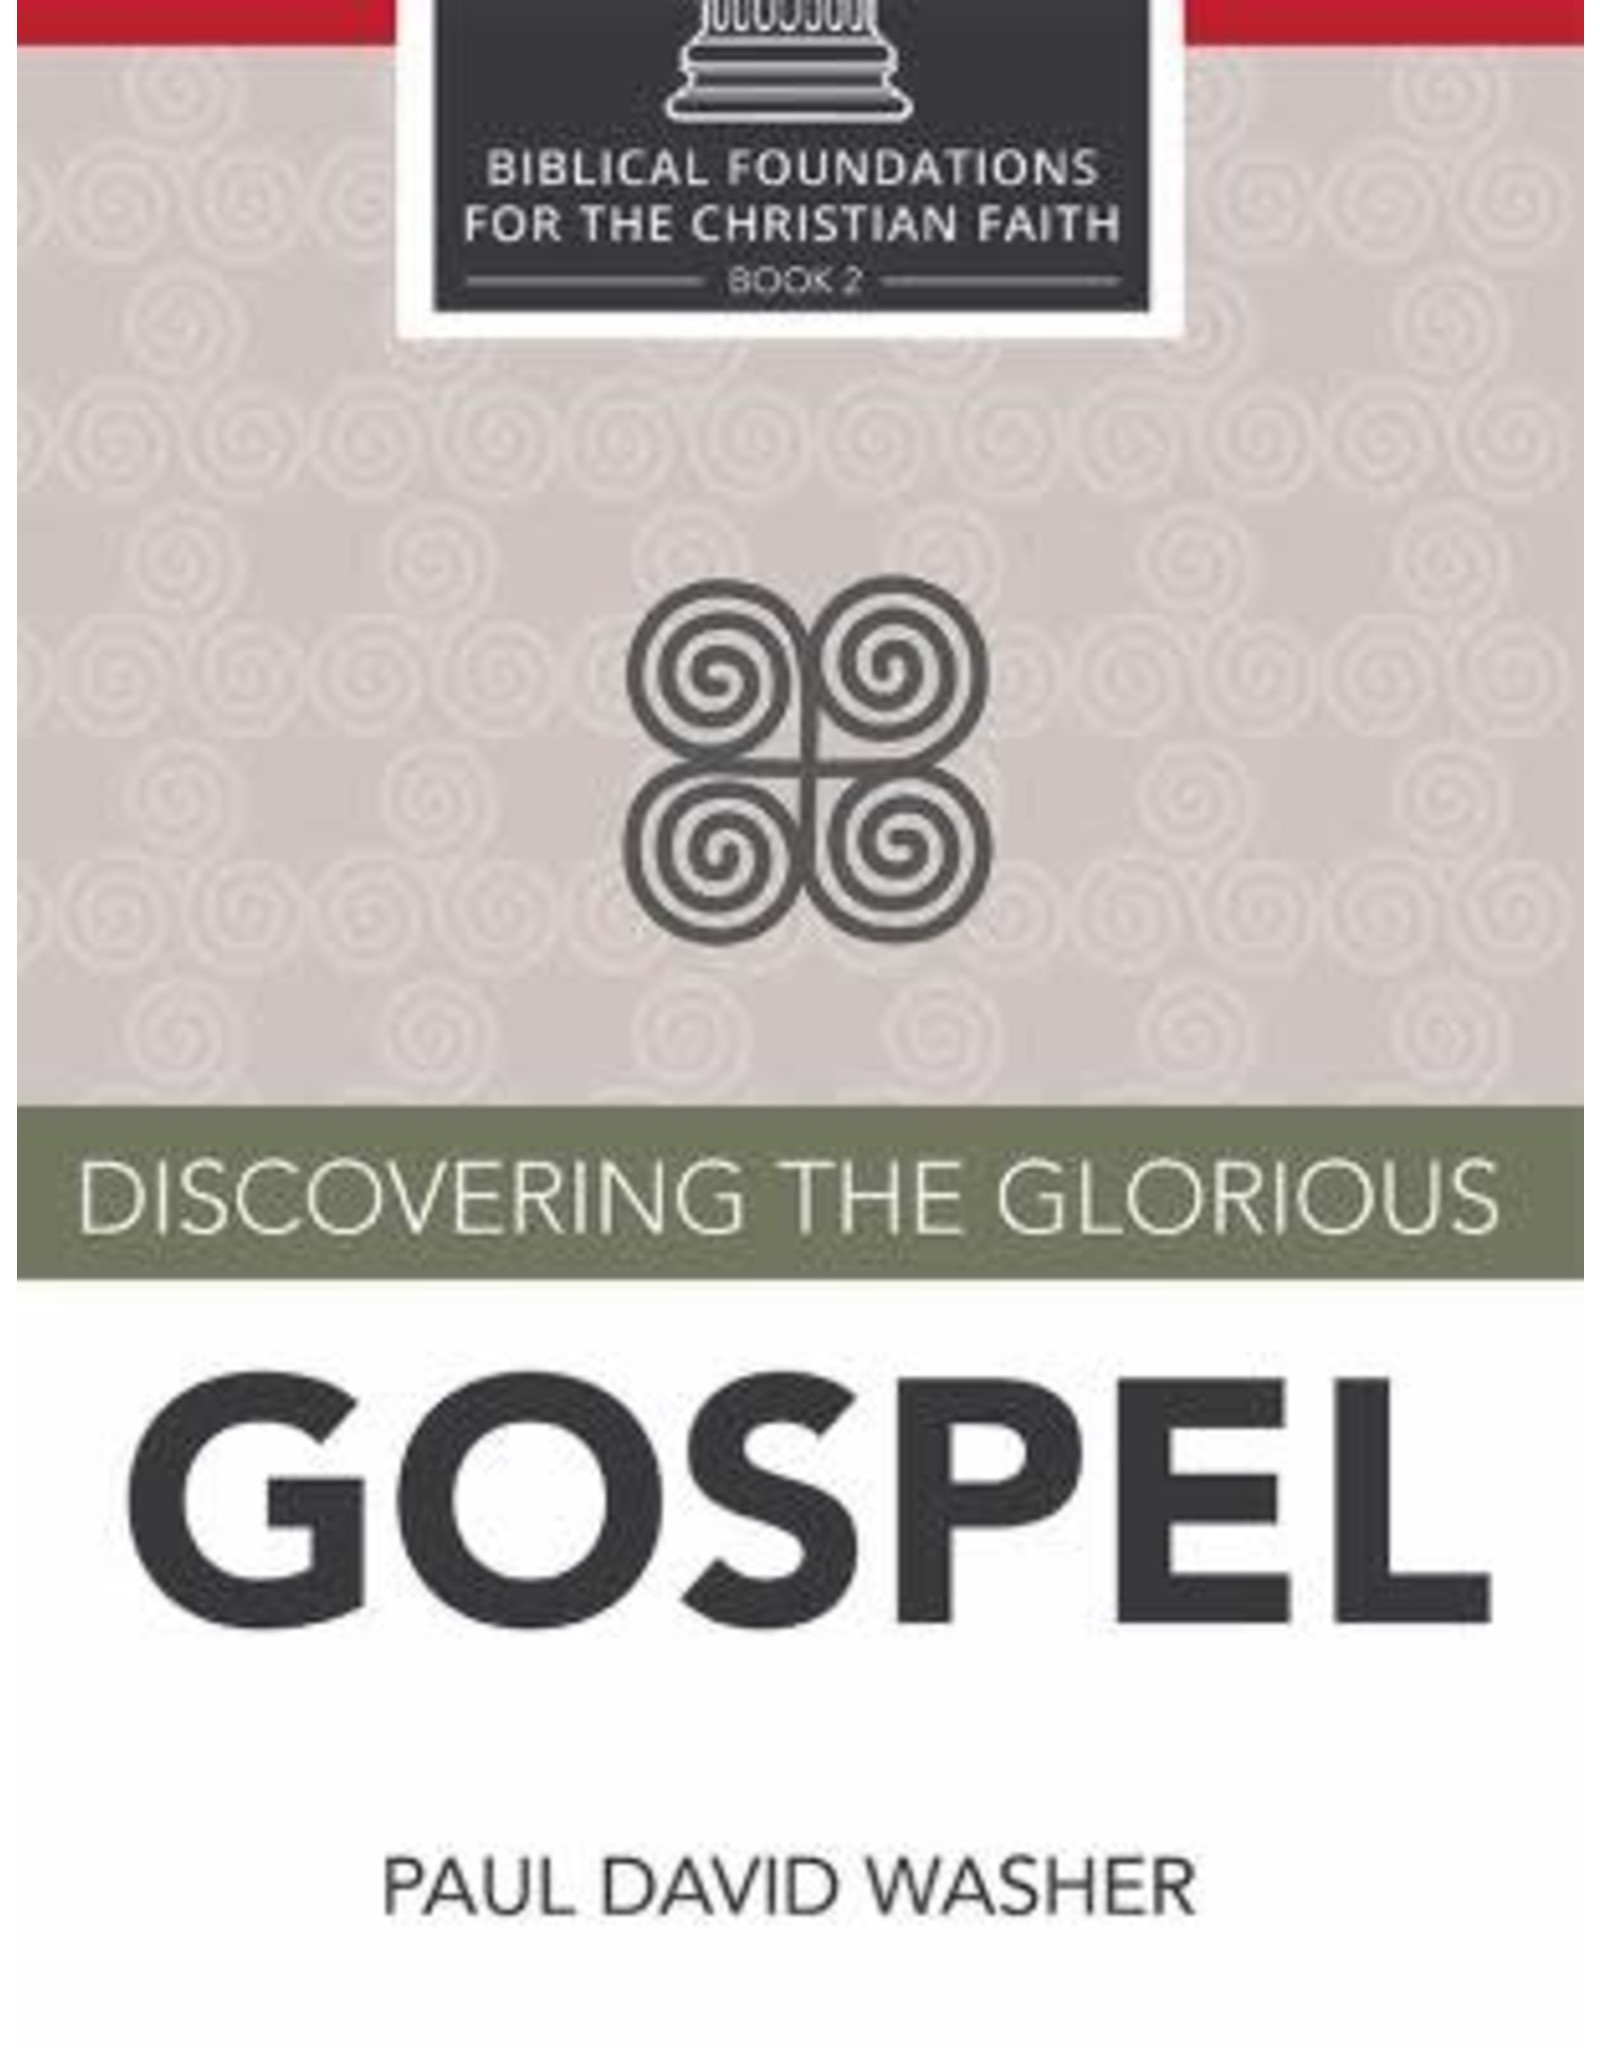 Washer Discovering the Glorious Gospel